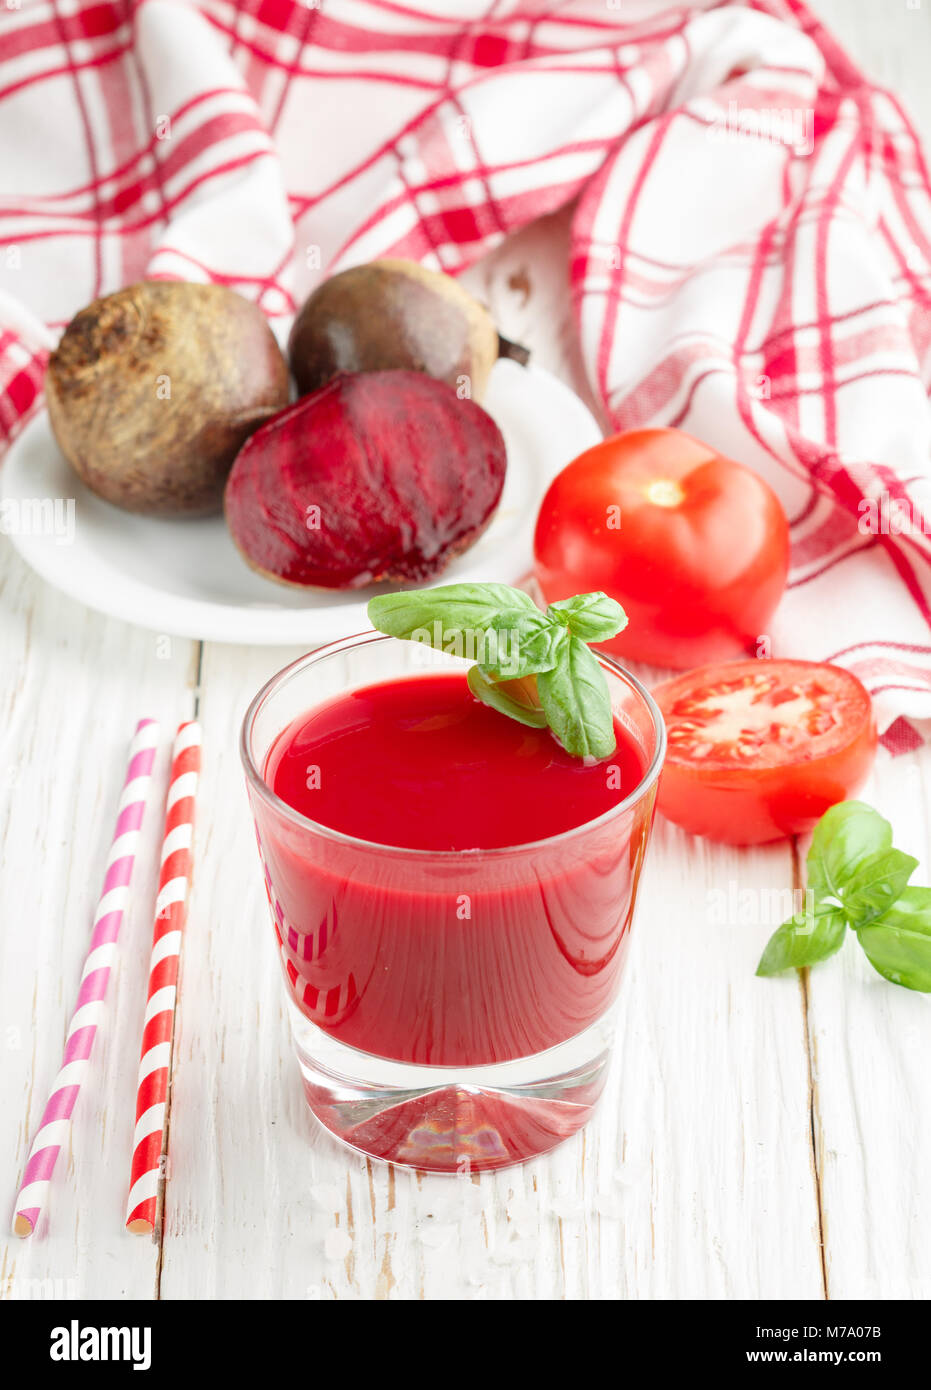 Detox beet smoothie with tomatoes and Basil. Selective focus Stock Photo